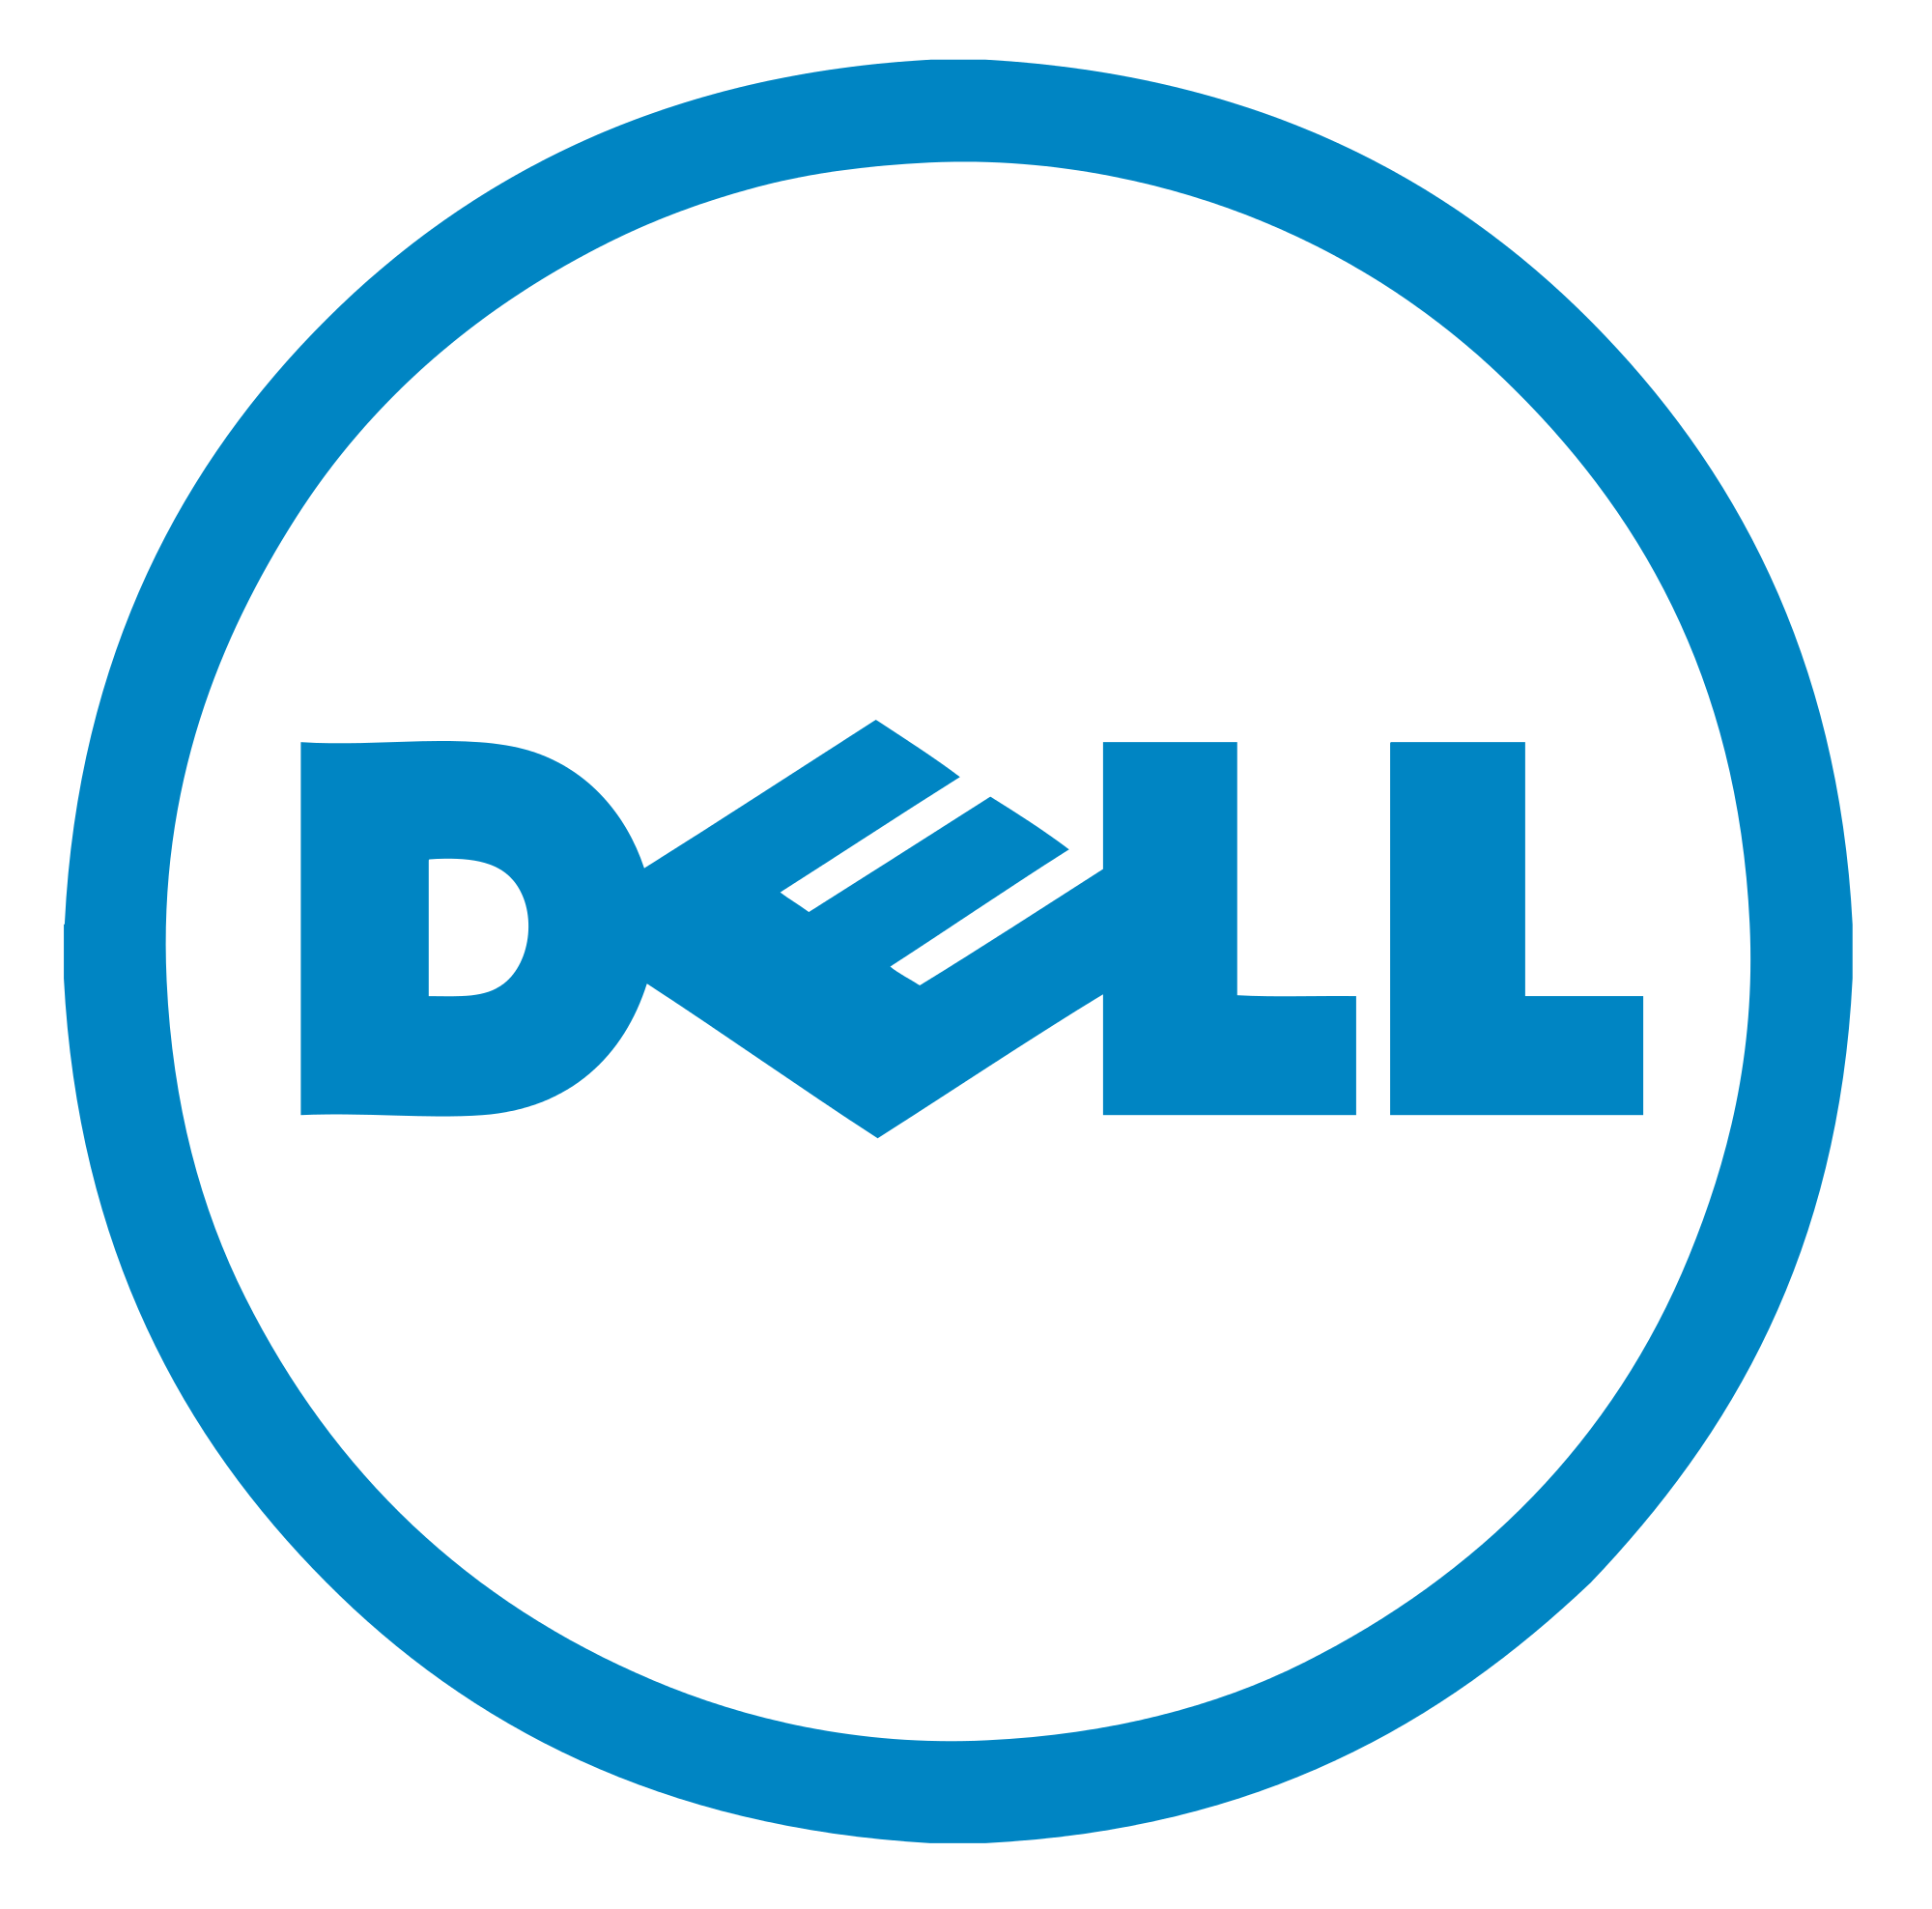 dell-private-limited